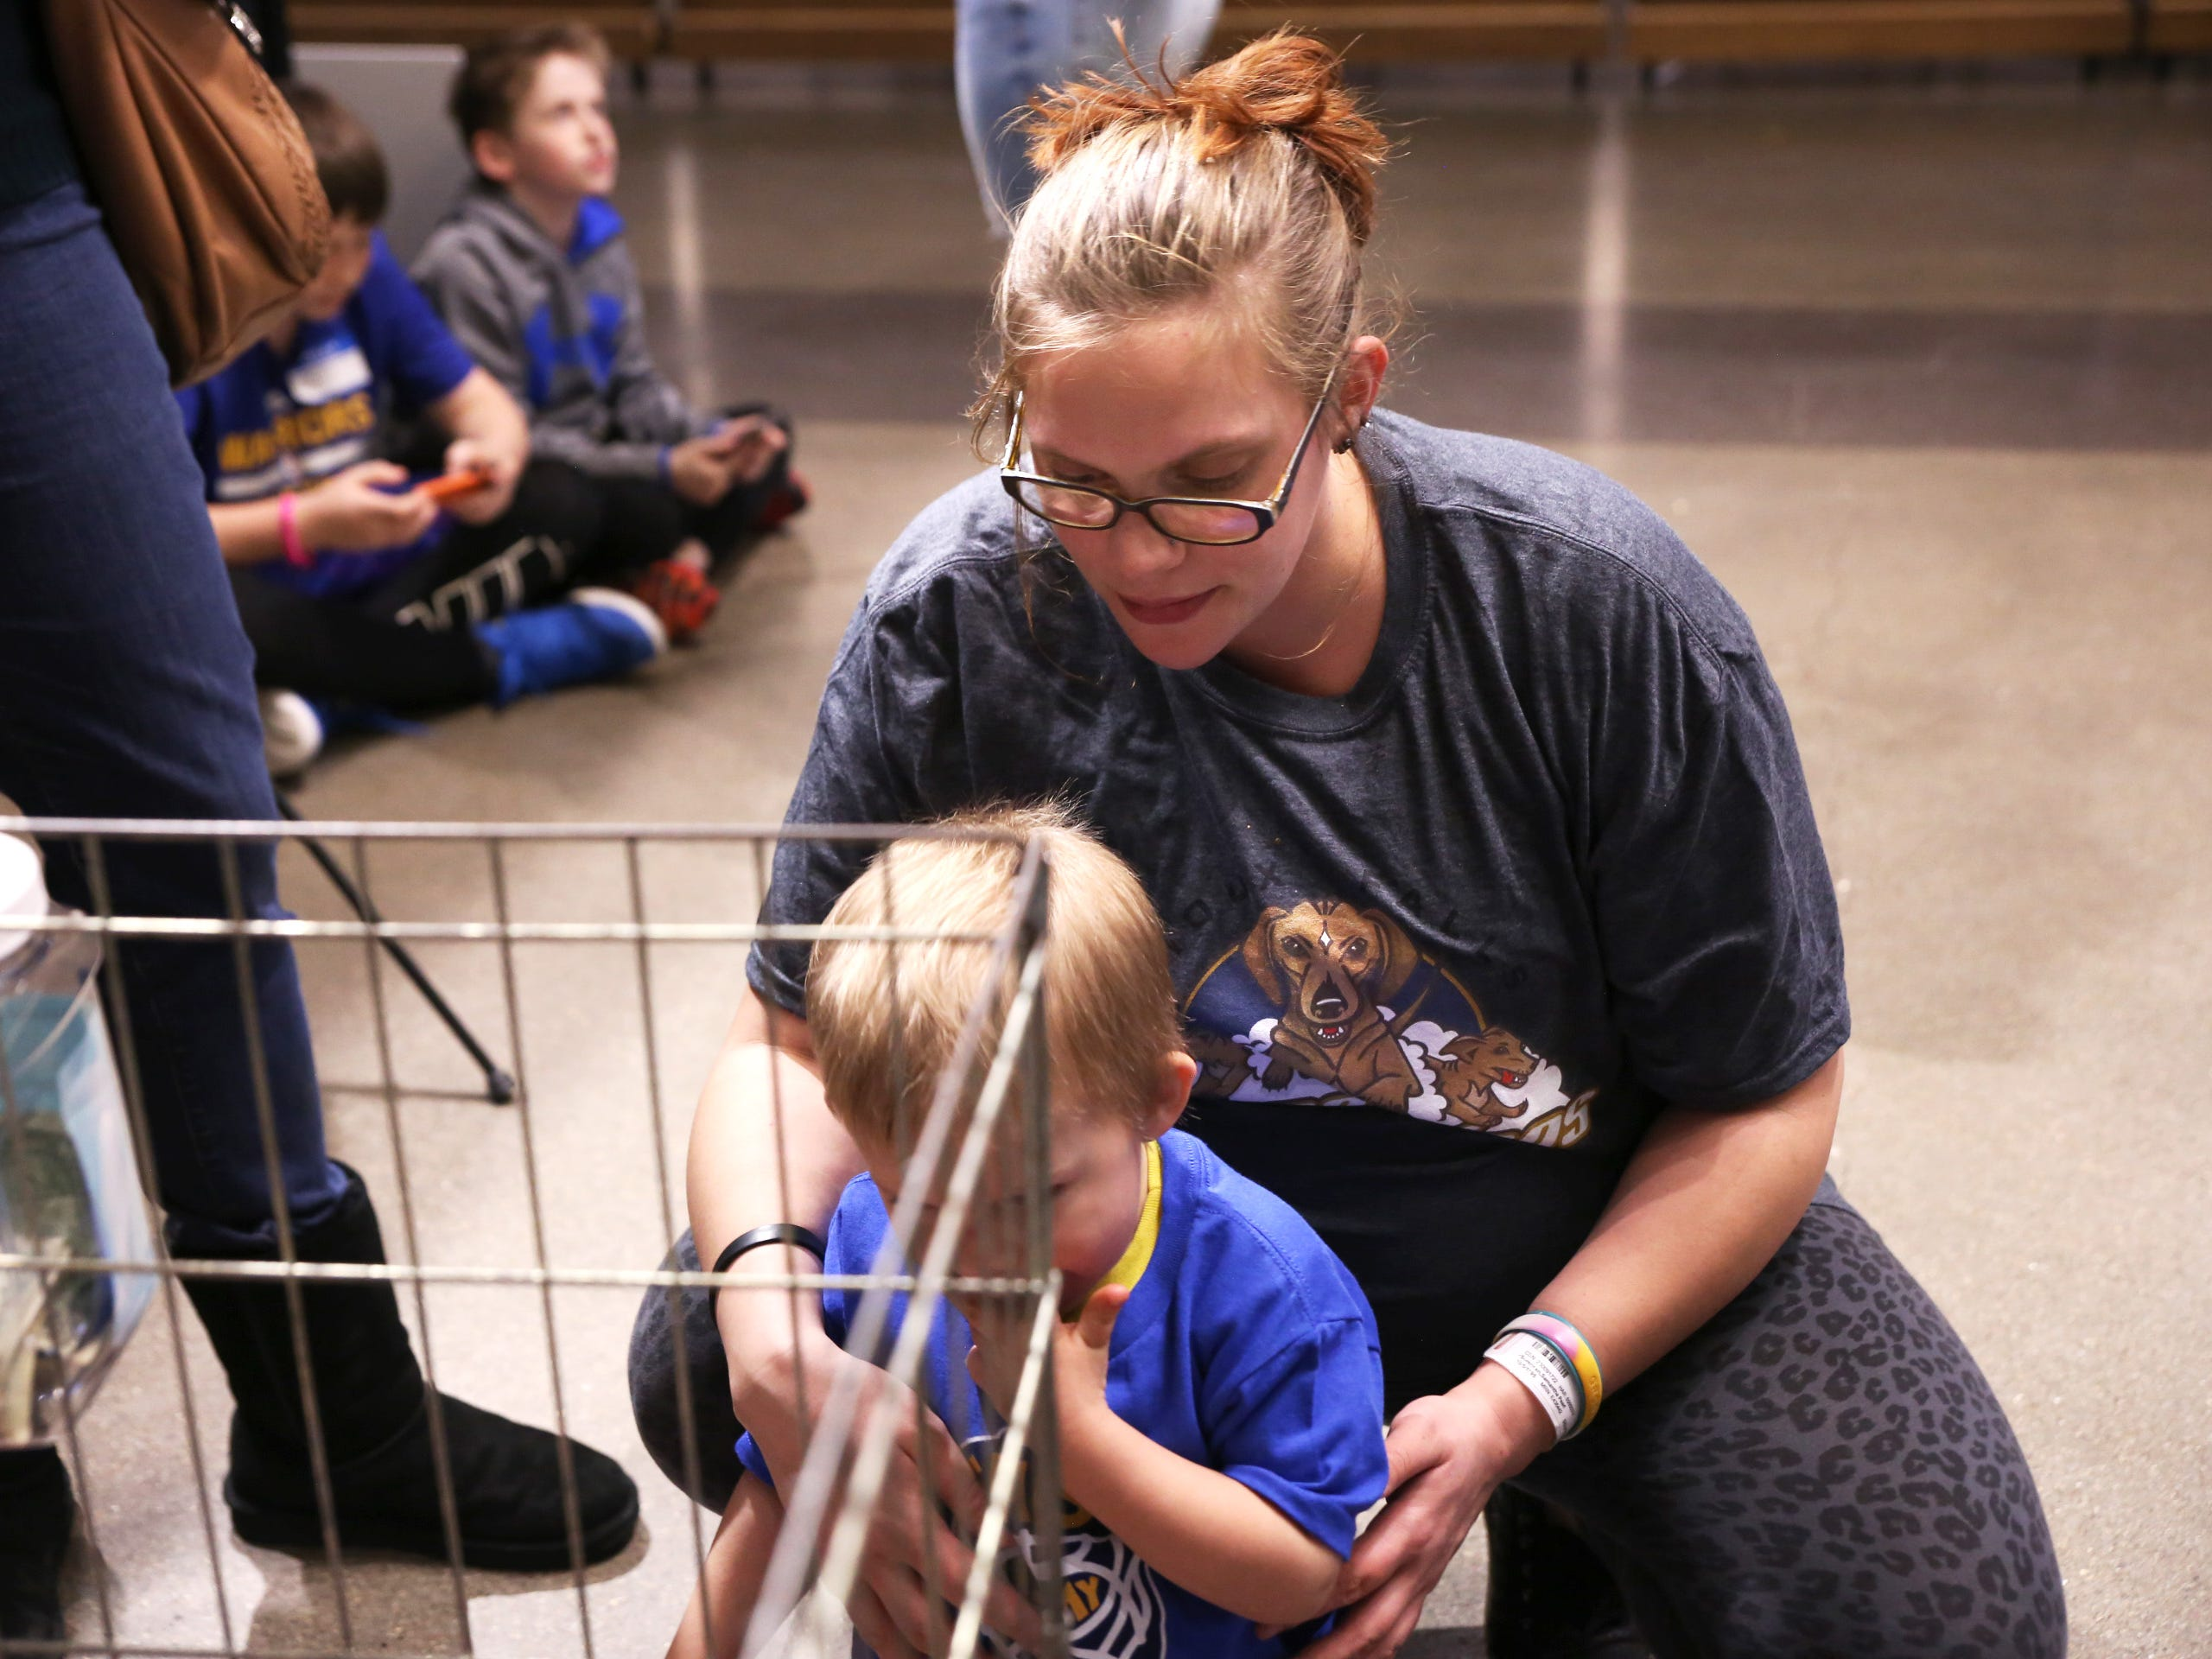 Samantha Sorensen sports a Fighting Wiener Dog T-Shirt that she bought for her son Ashton Hanisch, 3, while they pet adoptable dachshunds during a Stampede game against the Omaha Lancers at the Denny Sanford Premier Center Feb. 23, 2019.